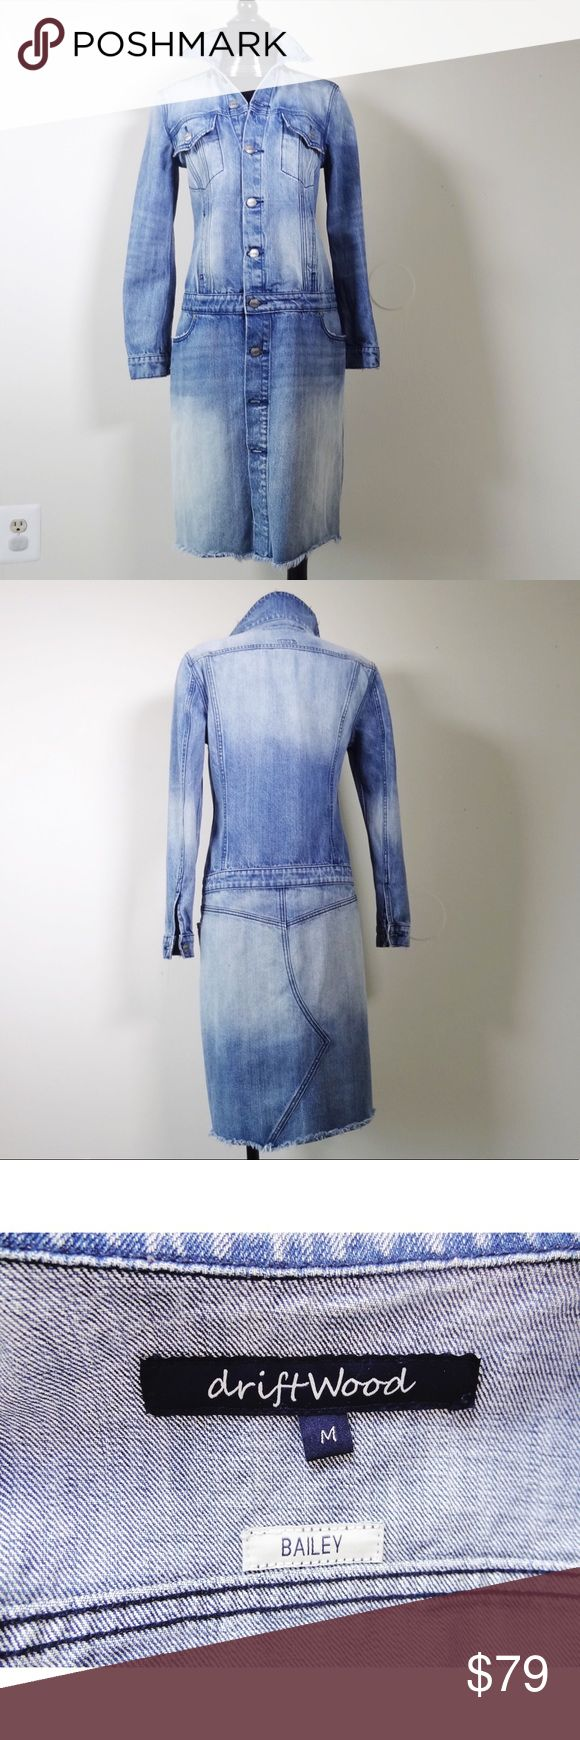 Driftwood Bailey Long sleeve denim Jean dress Med This Driftwood denim dress is in great condition. Lots of details. Lovely washed denim. Style Bailey. Size medium. Lord & Taylor Dresses Long Sleeve